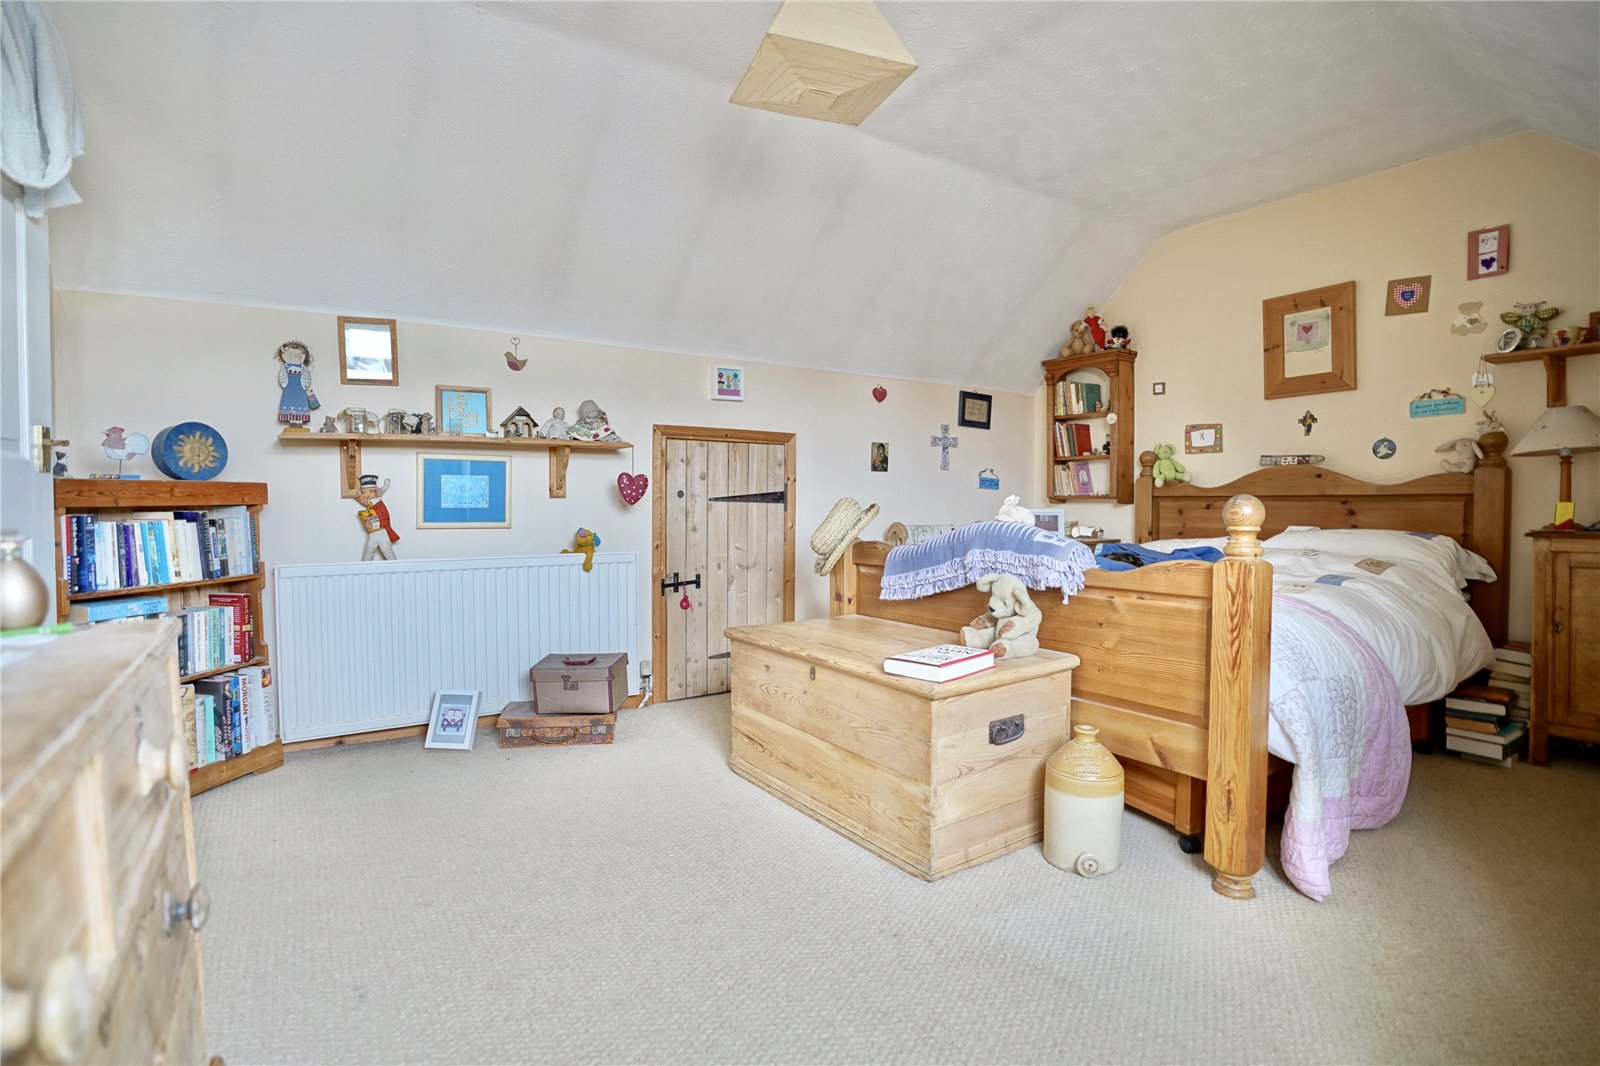 3 bed house for sale in Hemingford Grey, PE28 9BS 7